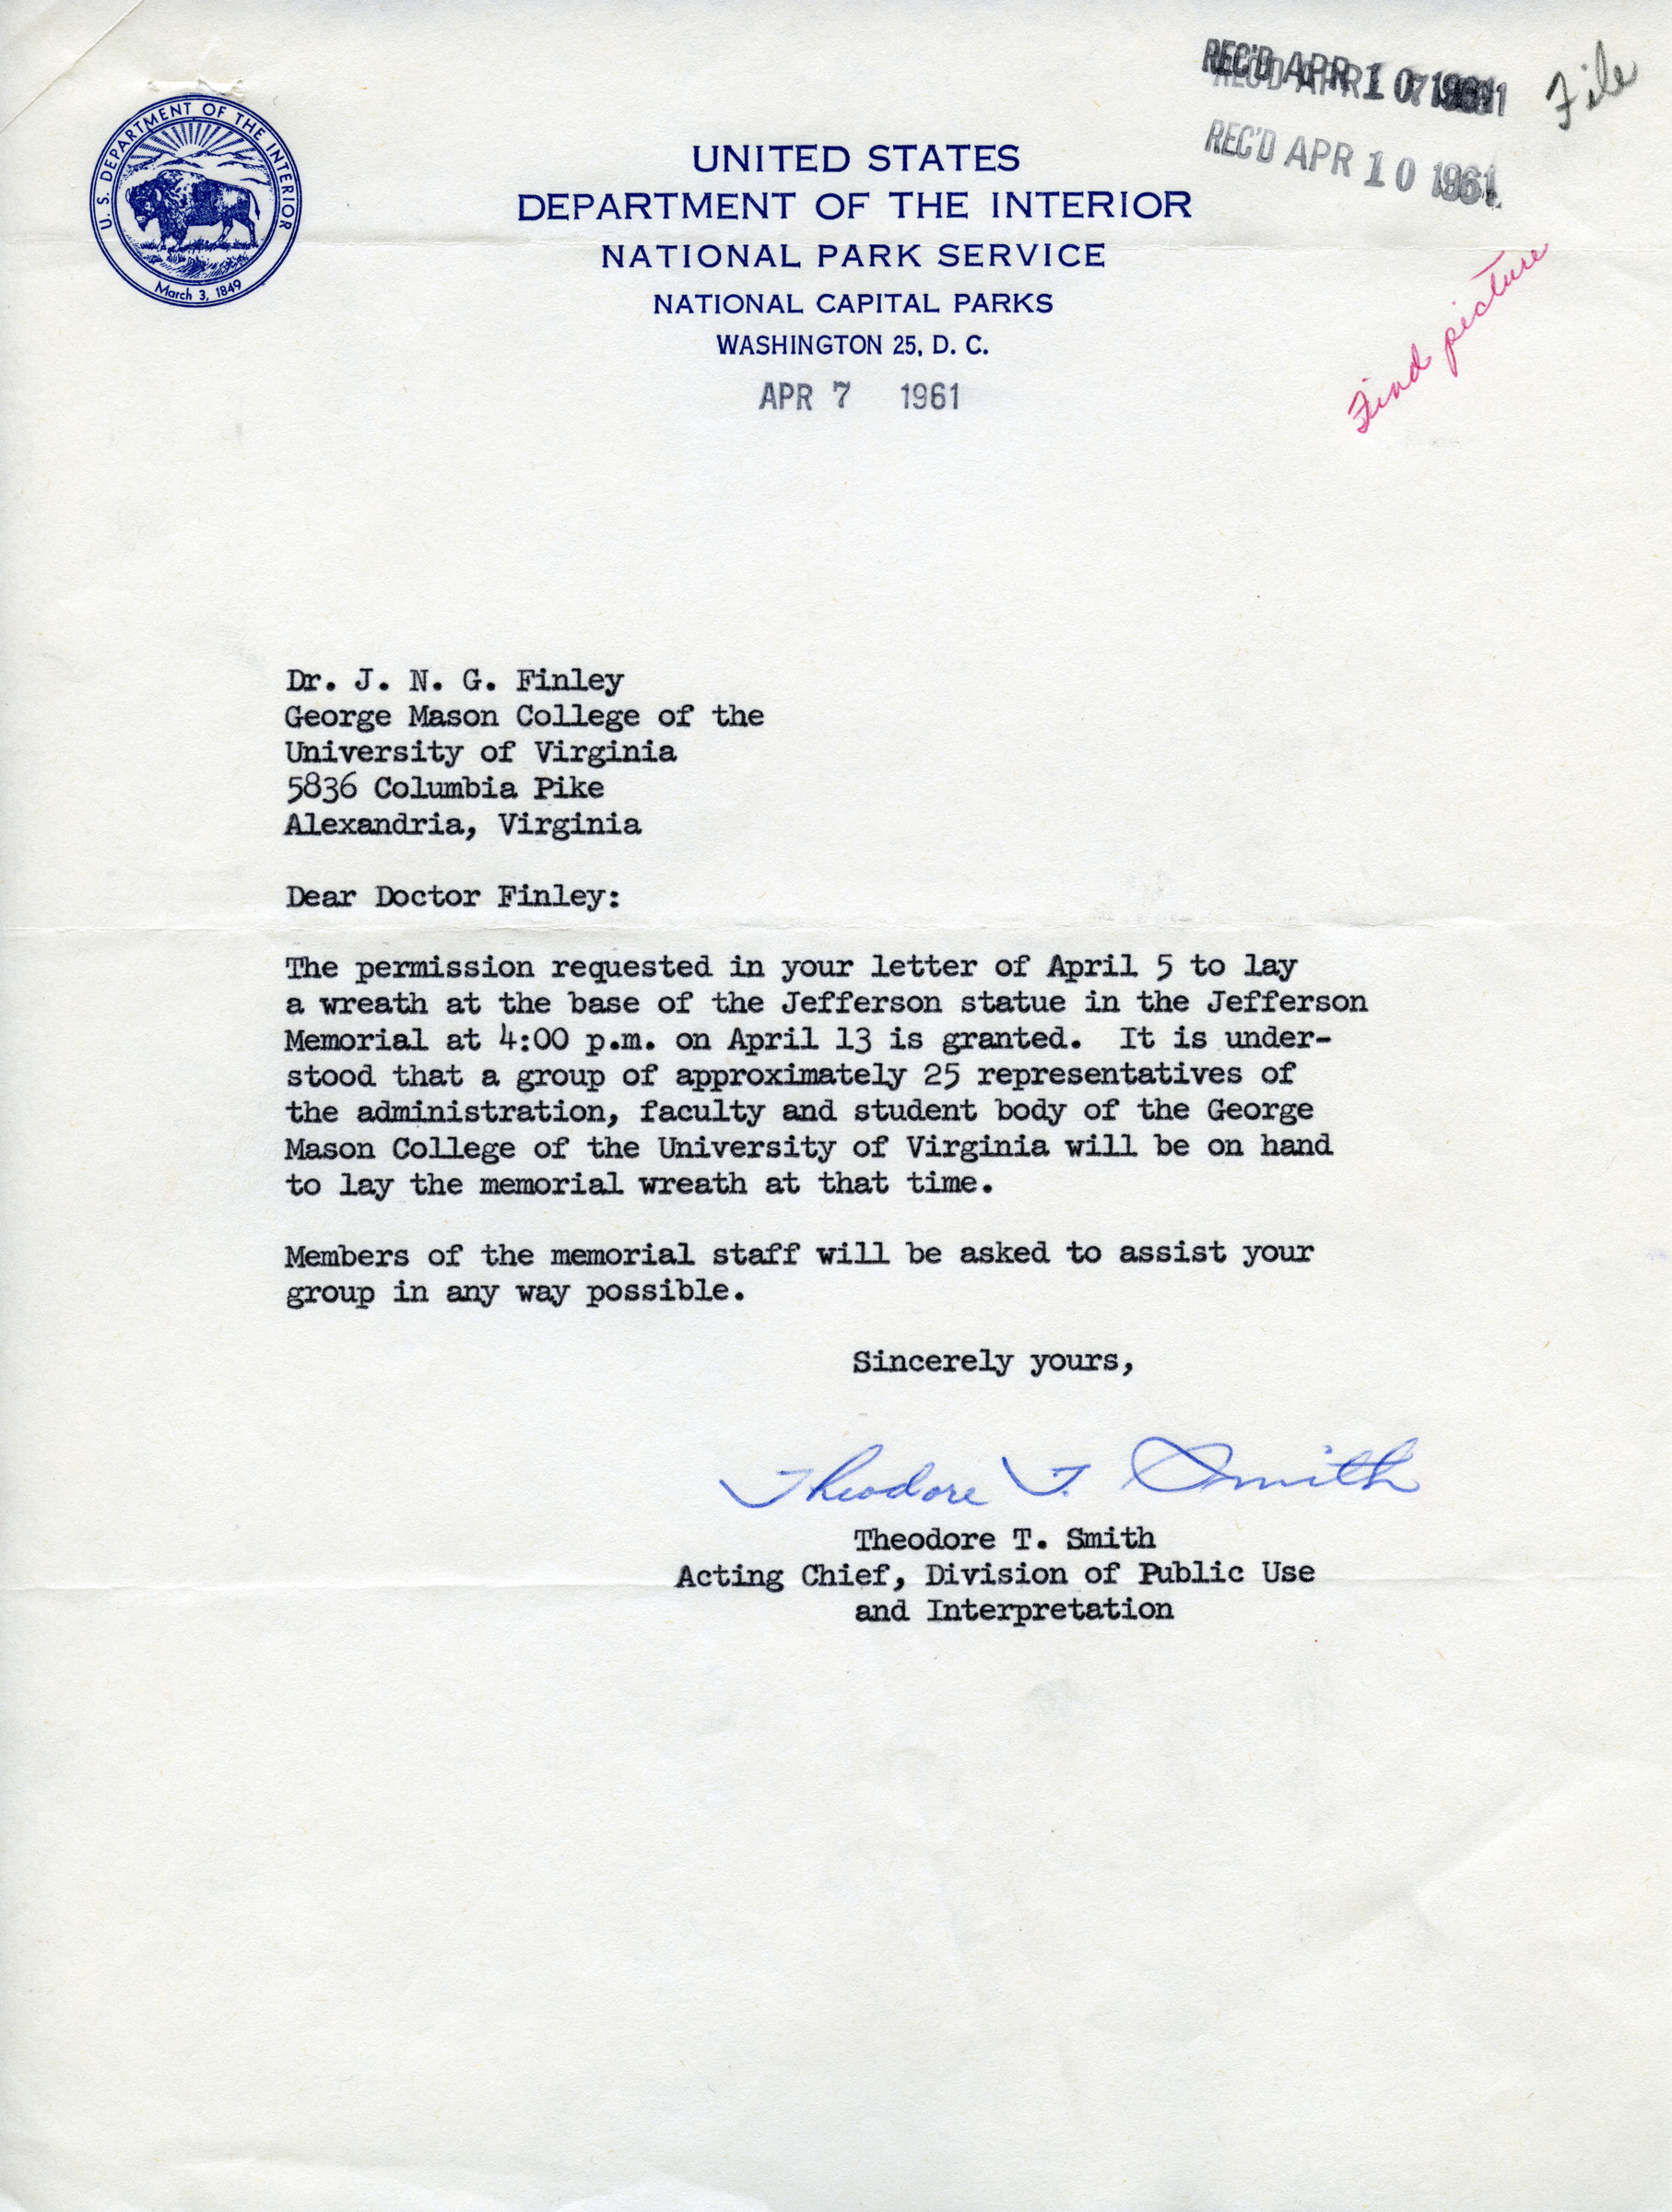 Theodore T. Smith to J.N.G. Finley, April 7, 1961